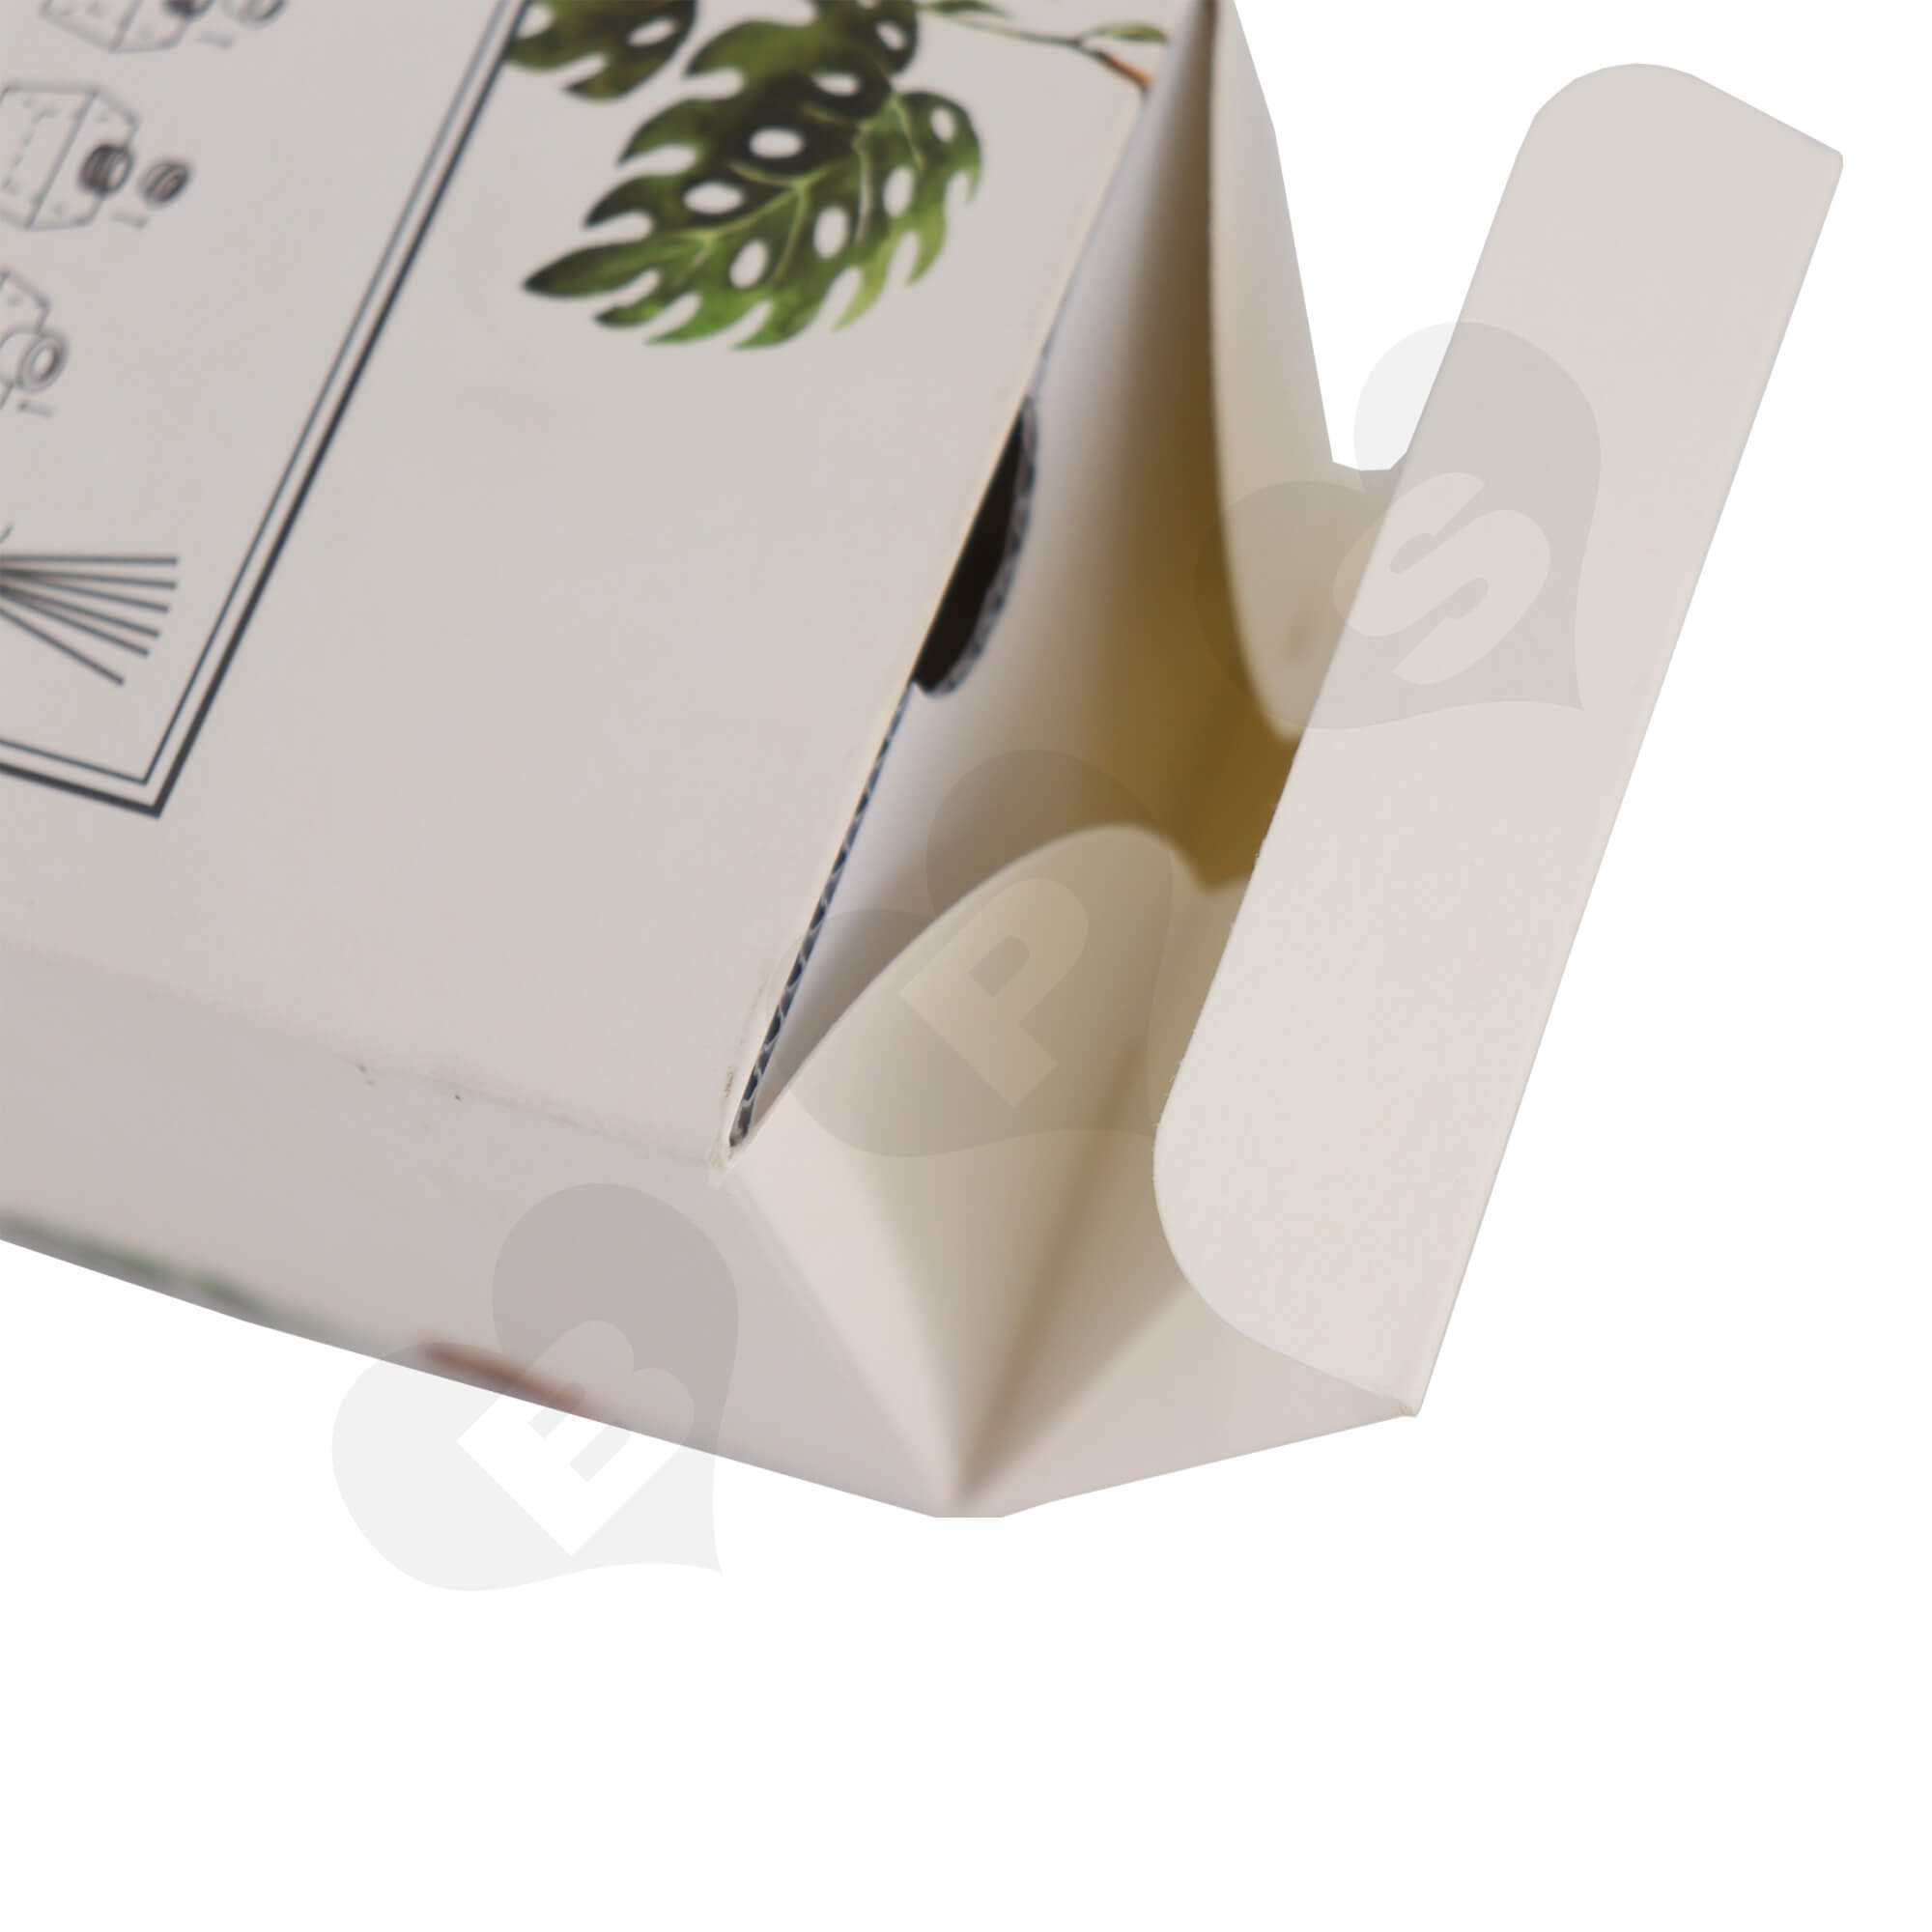 Cardboard Folding Carton For Packing Scent Diffuser With Testing Valve Side View Six